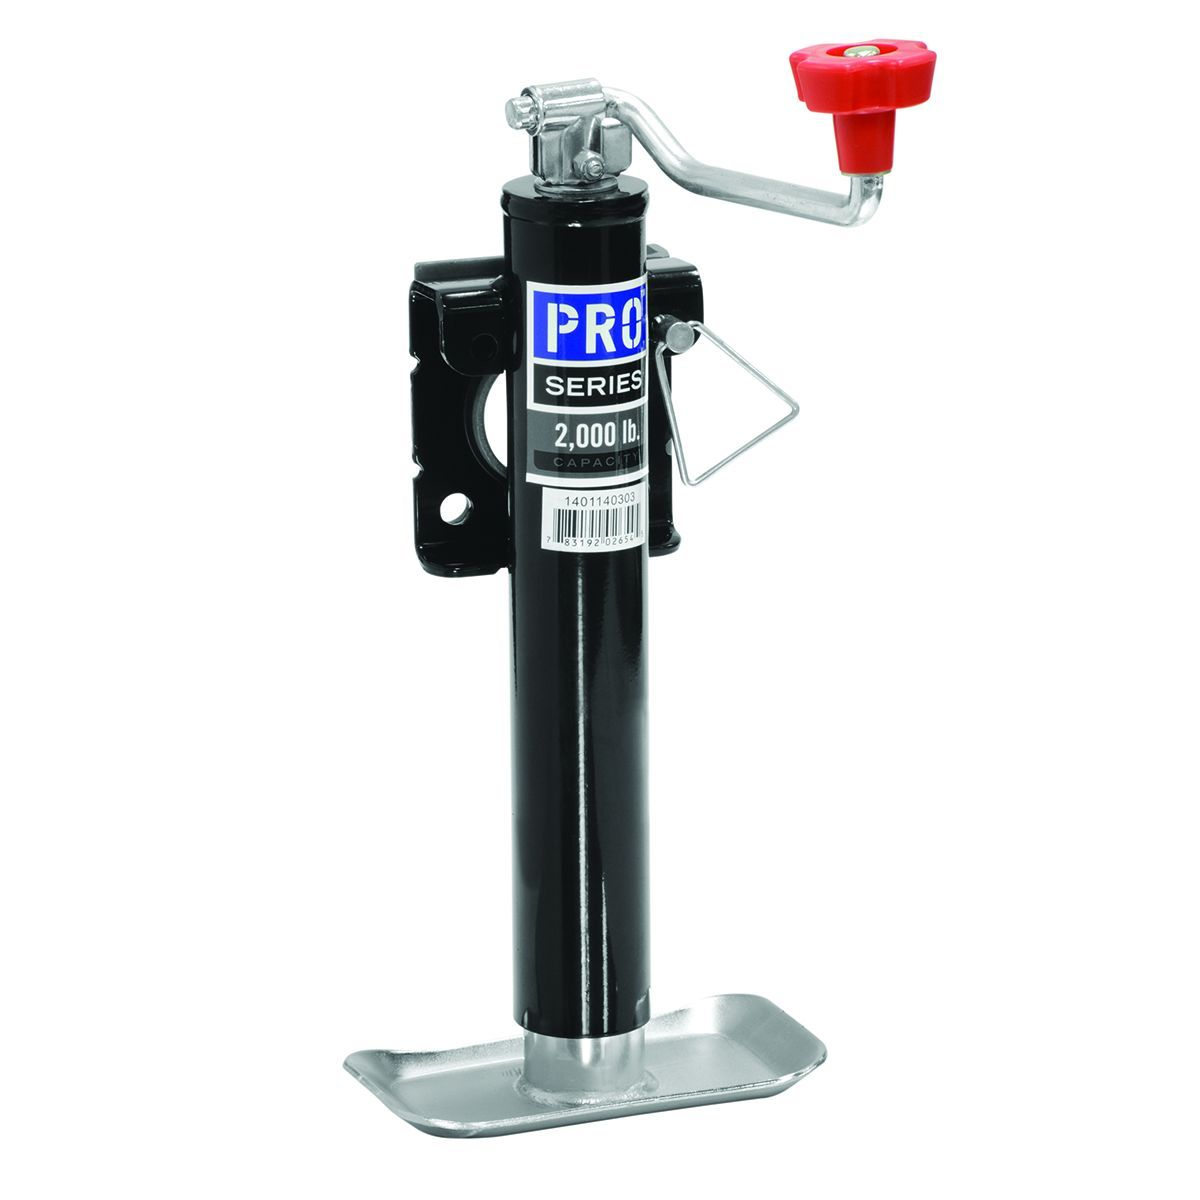 1401140303 Pro Series Hitch Trailer Tongue Jack Manual Trailer Jack -